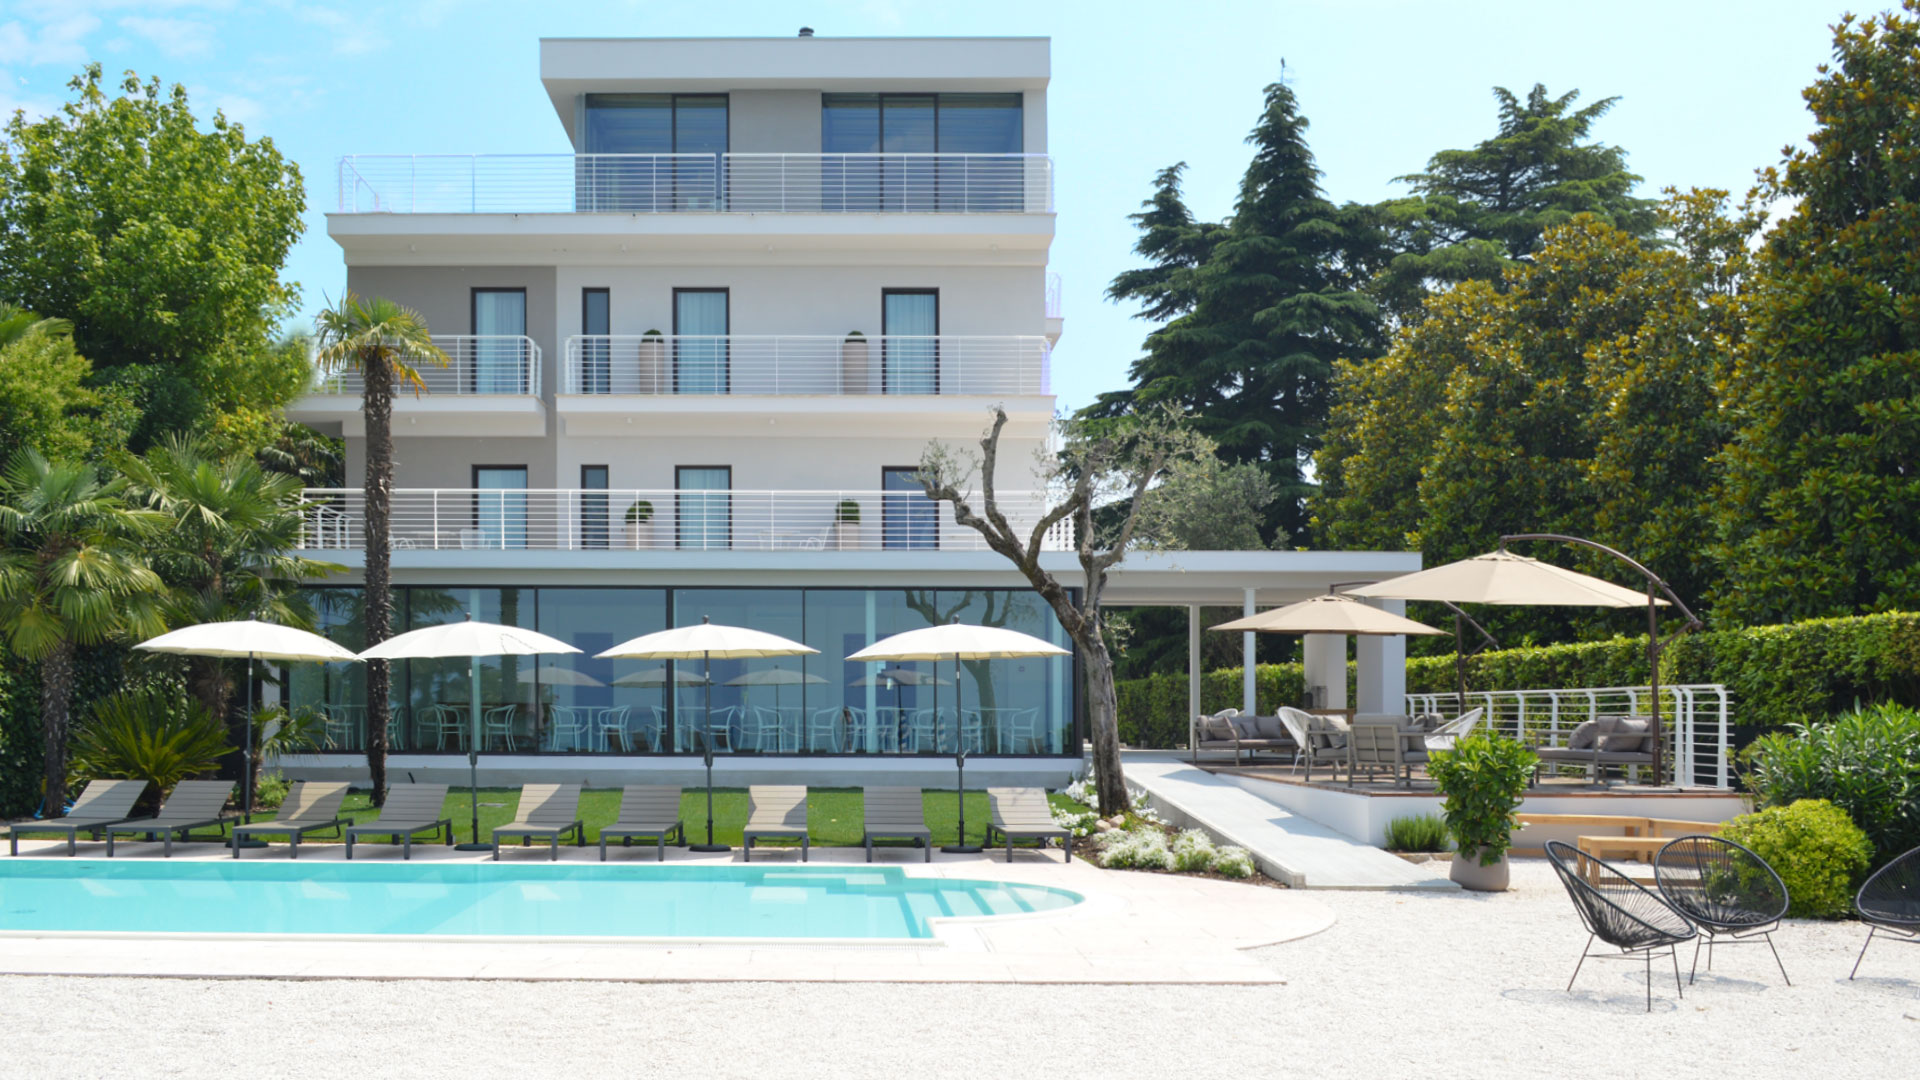 Aqva boutique hotel sirmione 18 rooms boutique hotel for Design hotel verona